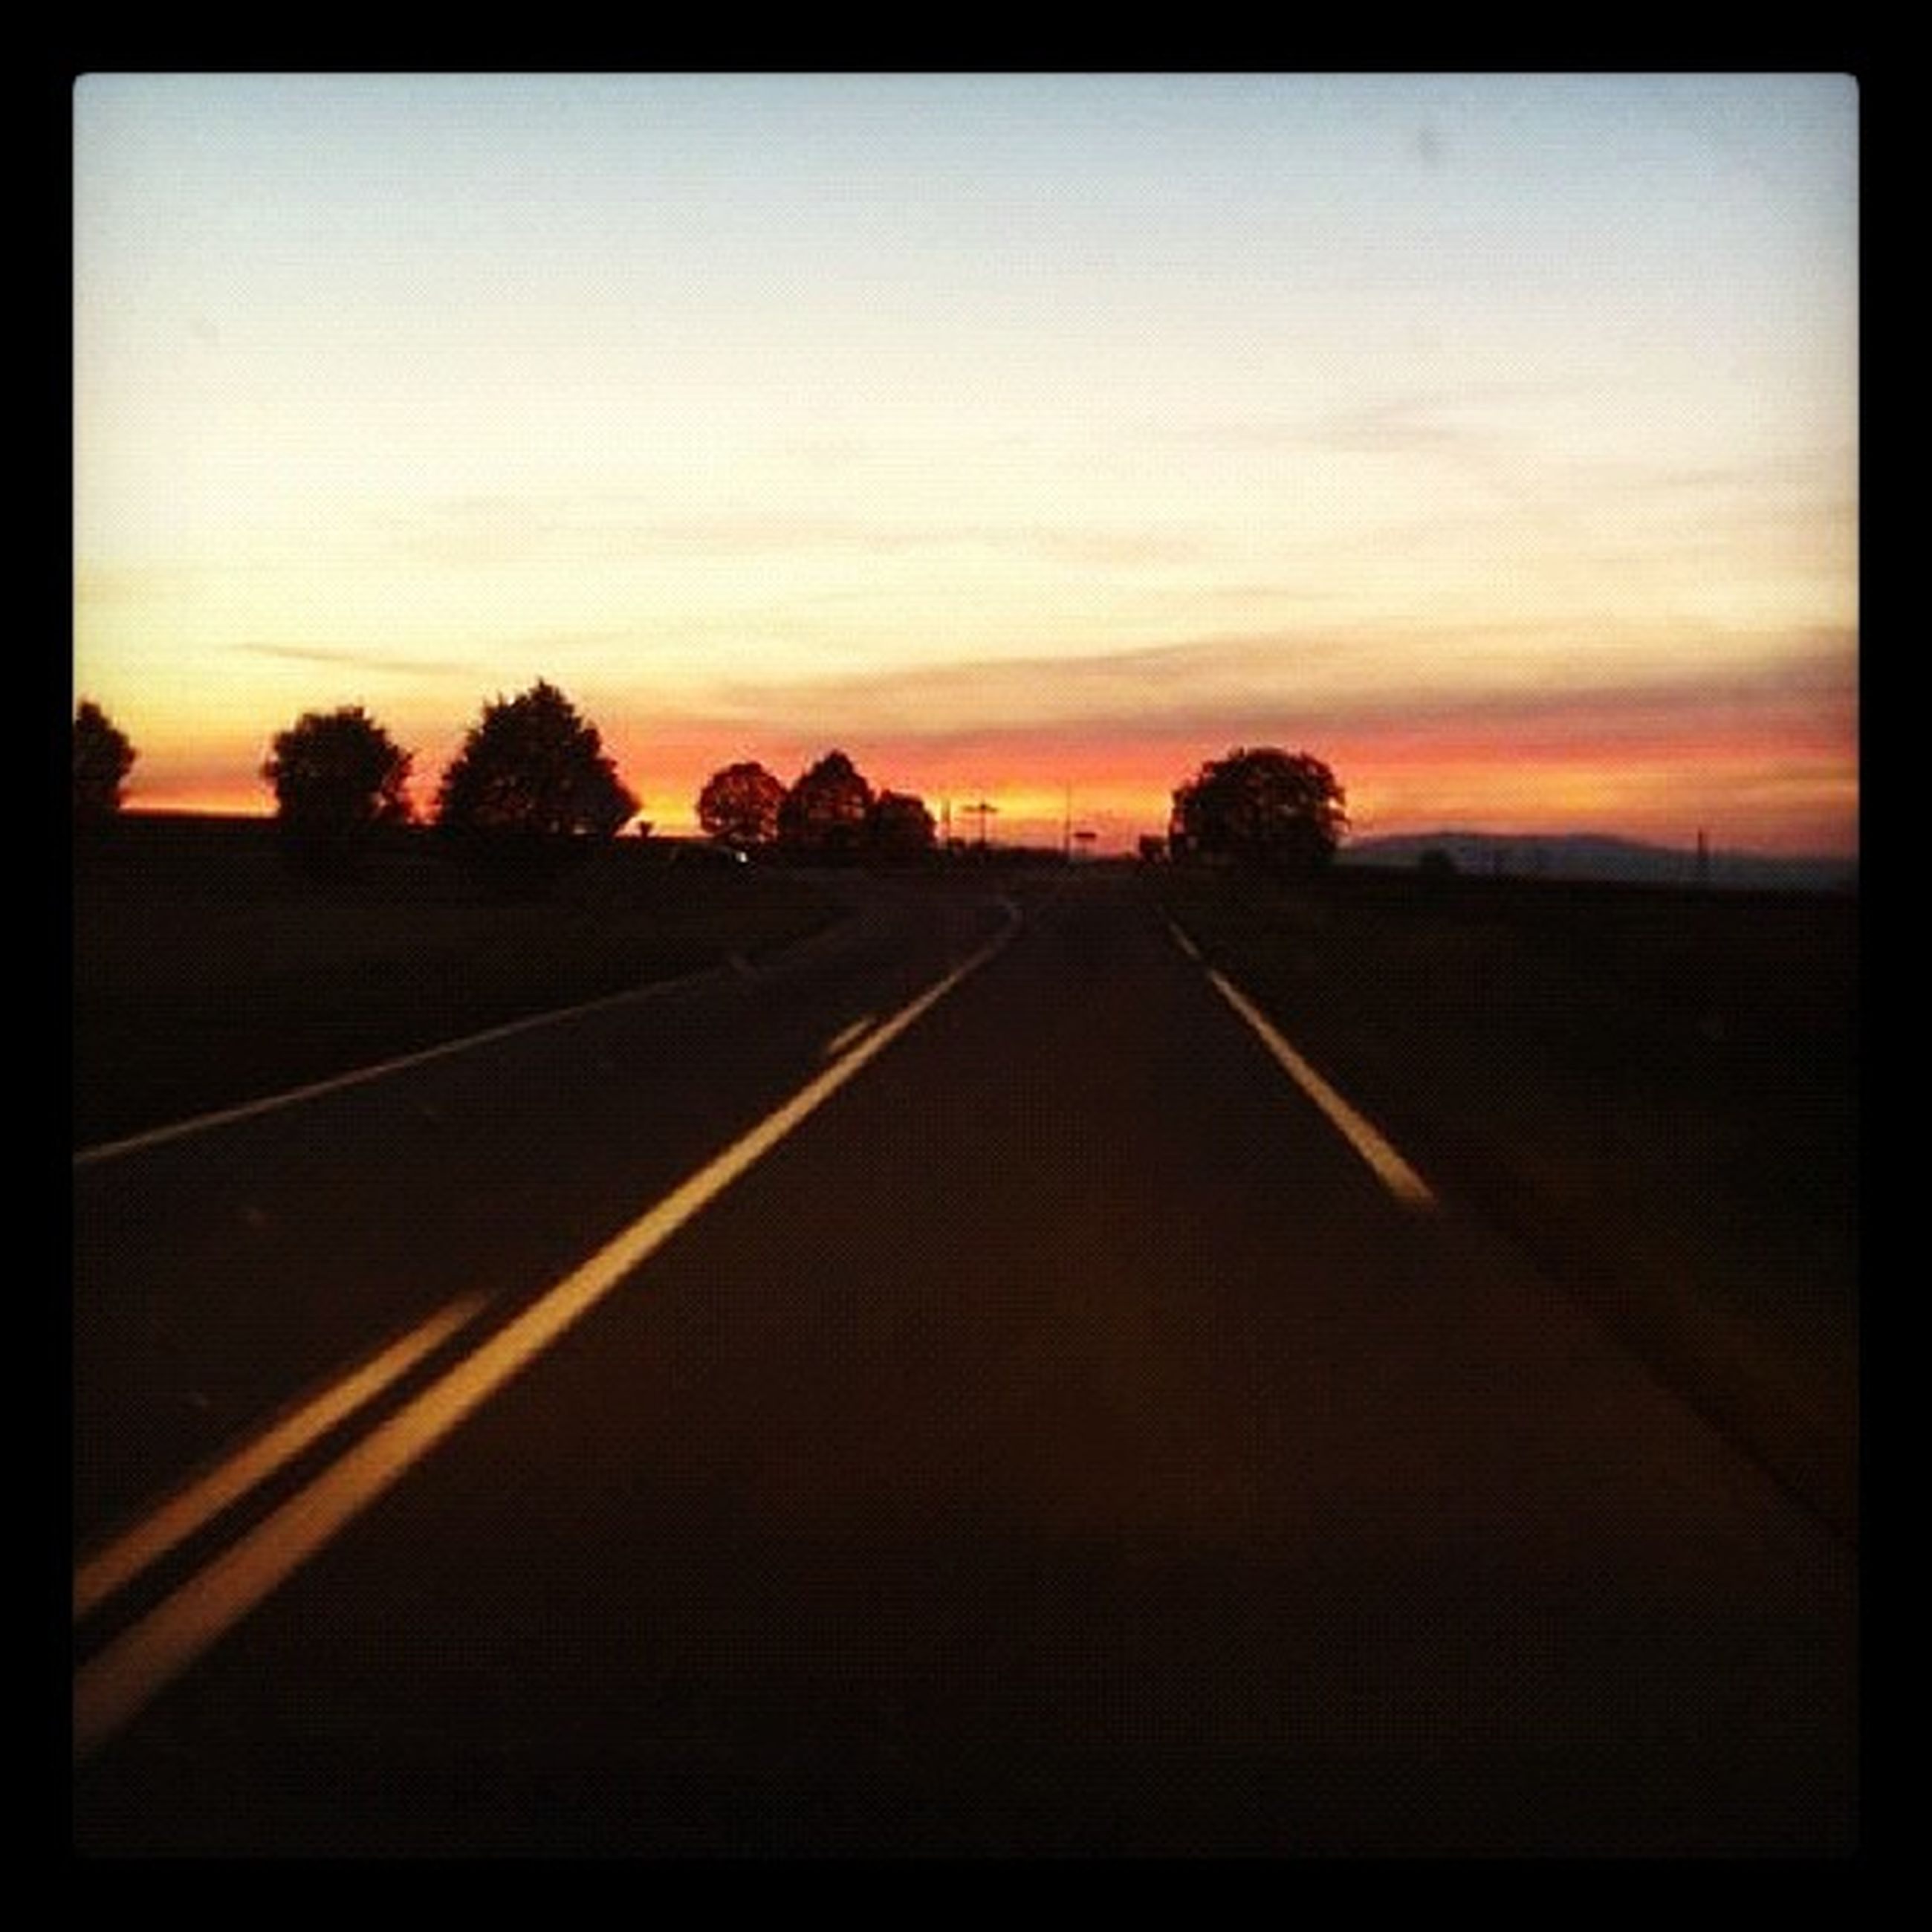 sunset, the way forward, transfer print, sky, transportation, diminishing perspective, orange color, auto post production filter, vanishing point, road, tranquil scene, tranquility, tree, landscape, silhouette, nature, empty, scenics, beauty in nature, dusk